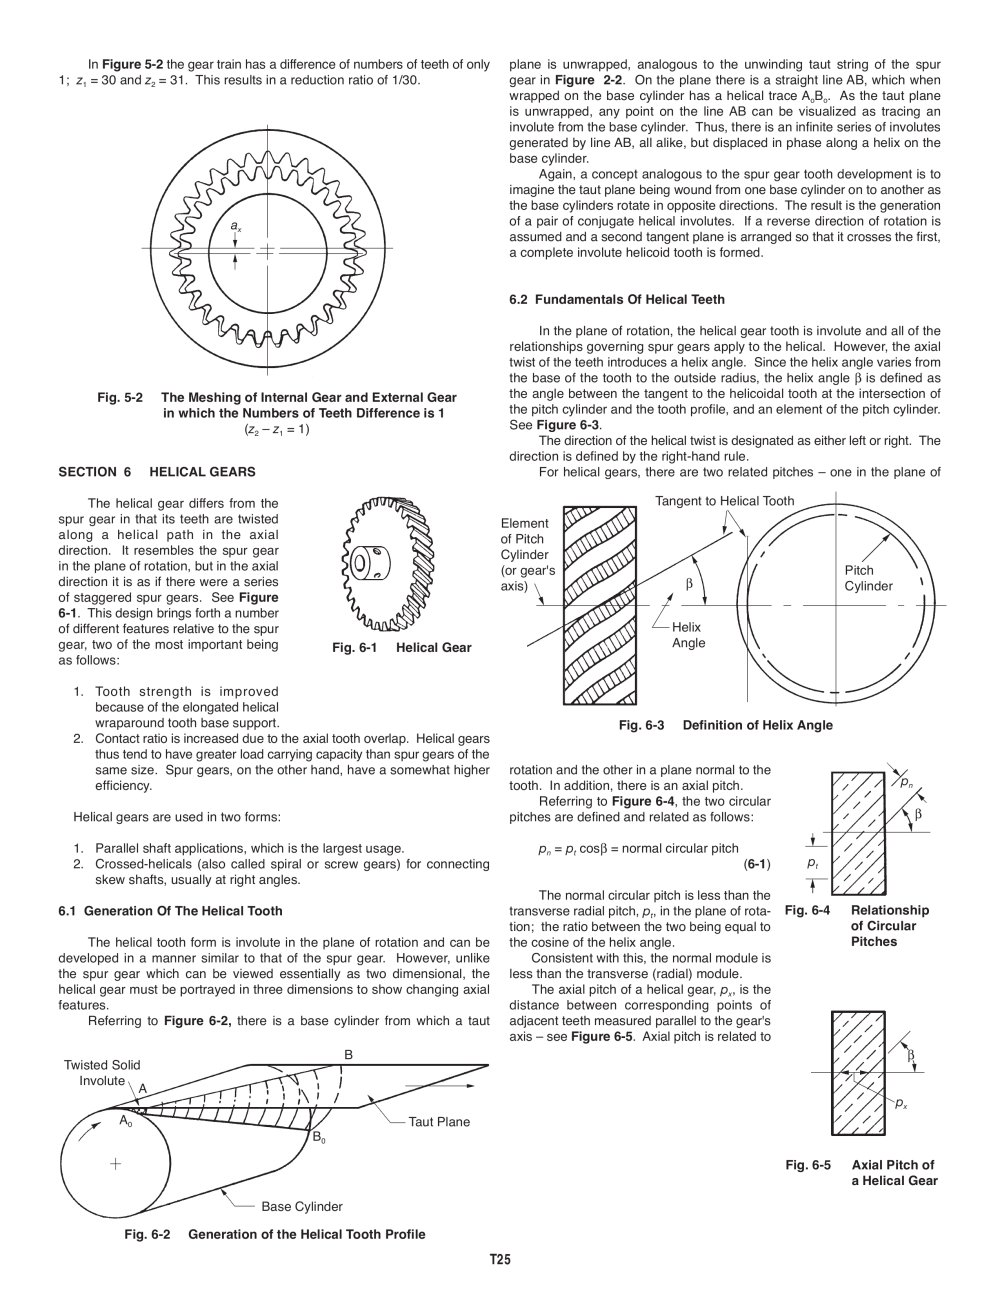 Helical Gear Calculations - More info